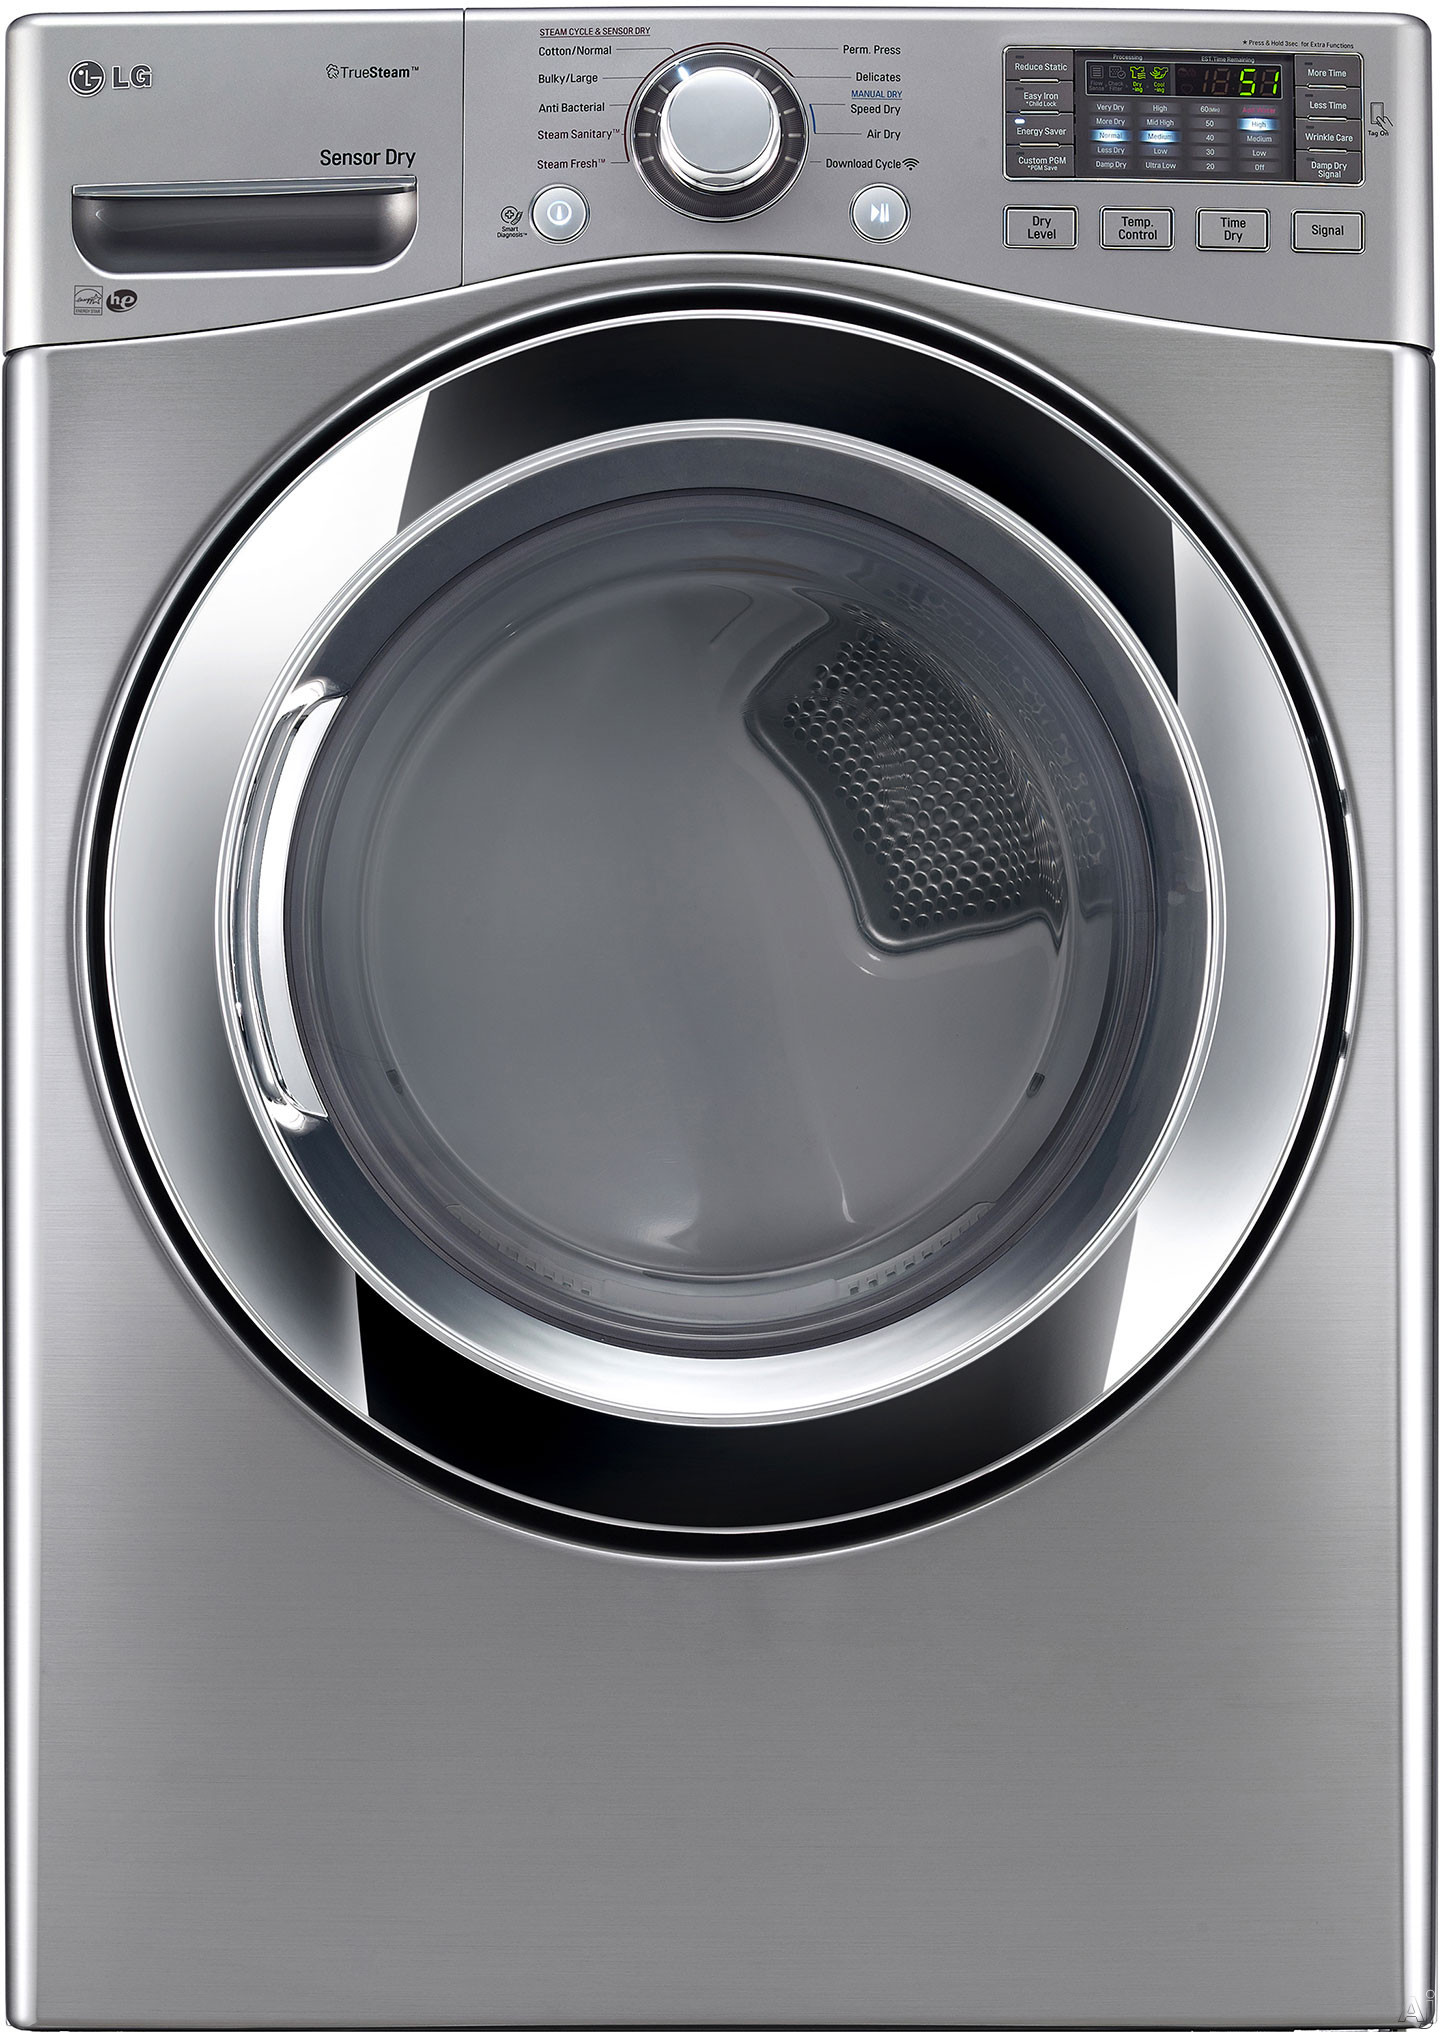 LG DLEX3370 27 Inch Electric Dryer with TrueSteam Sensor Dry Wrinkle Care Speed Dry 10 Drying Cycles 5 Temperature Settings Smart Diagnosis LoDecibel Quiet Operation ENERGY STAR Stacking Capability LE